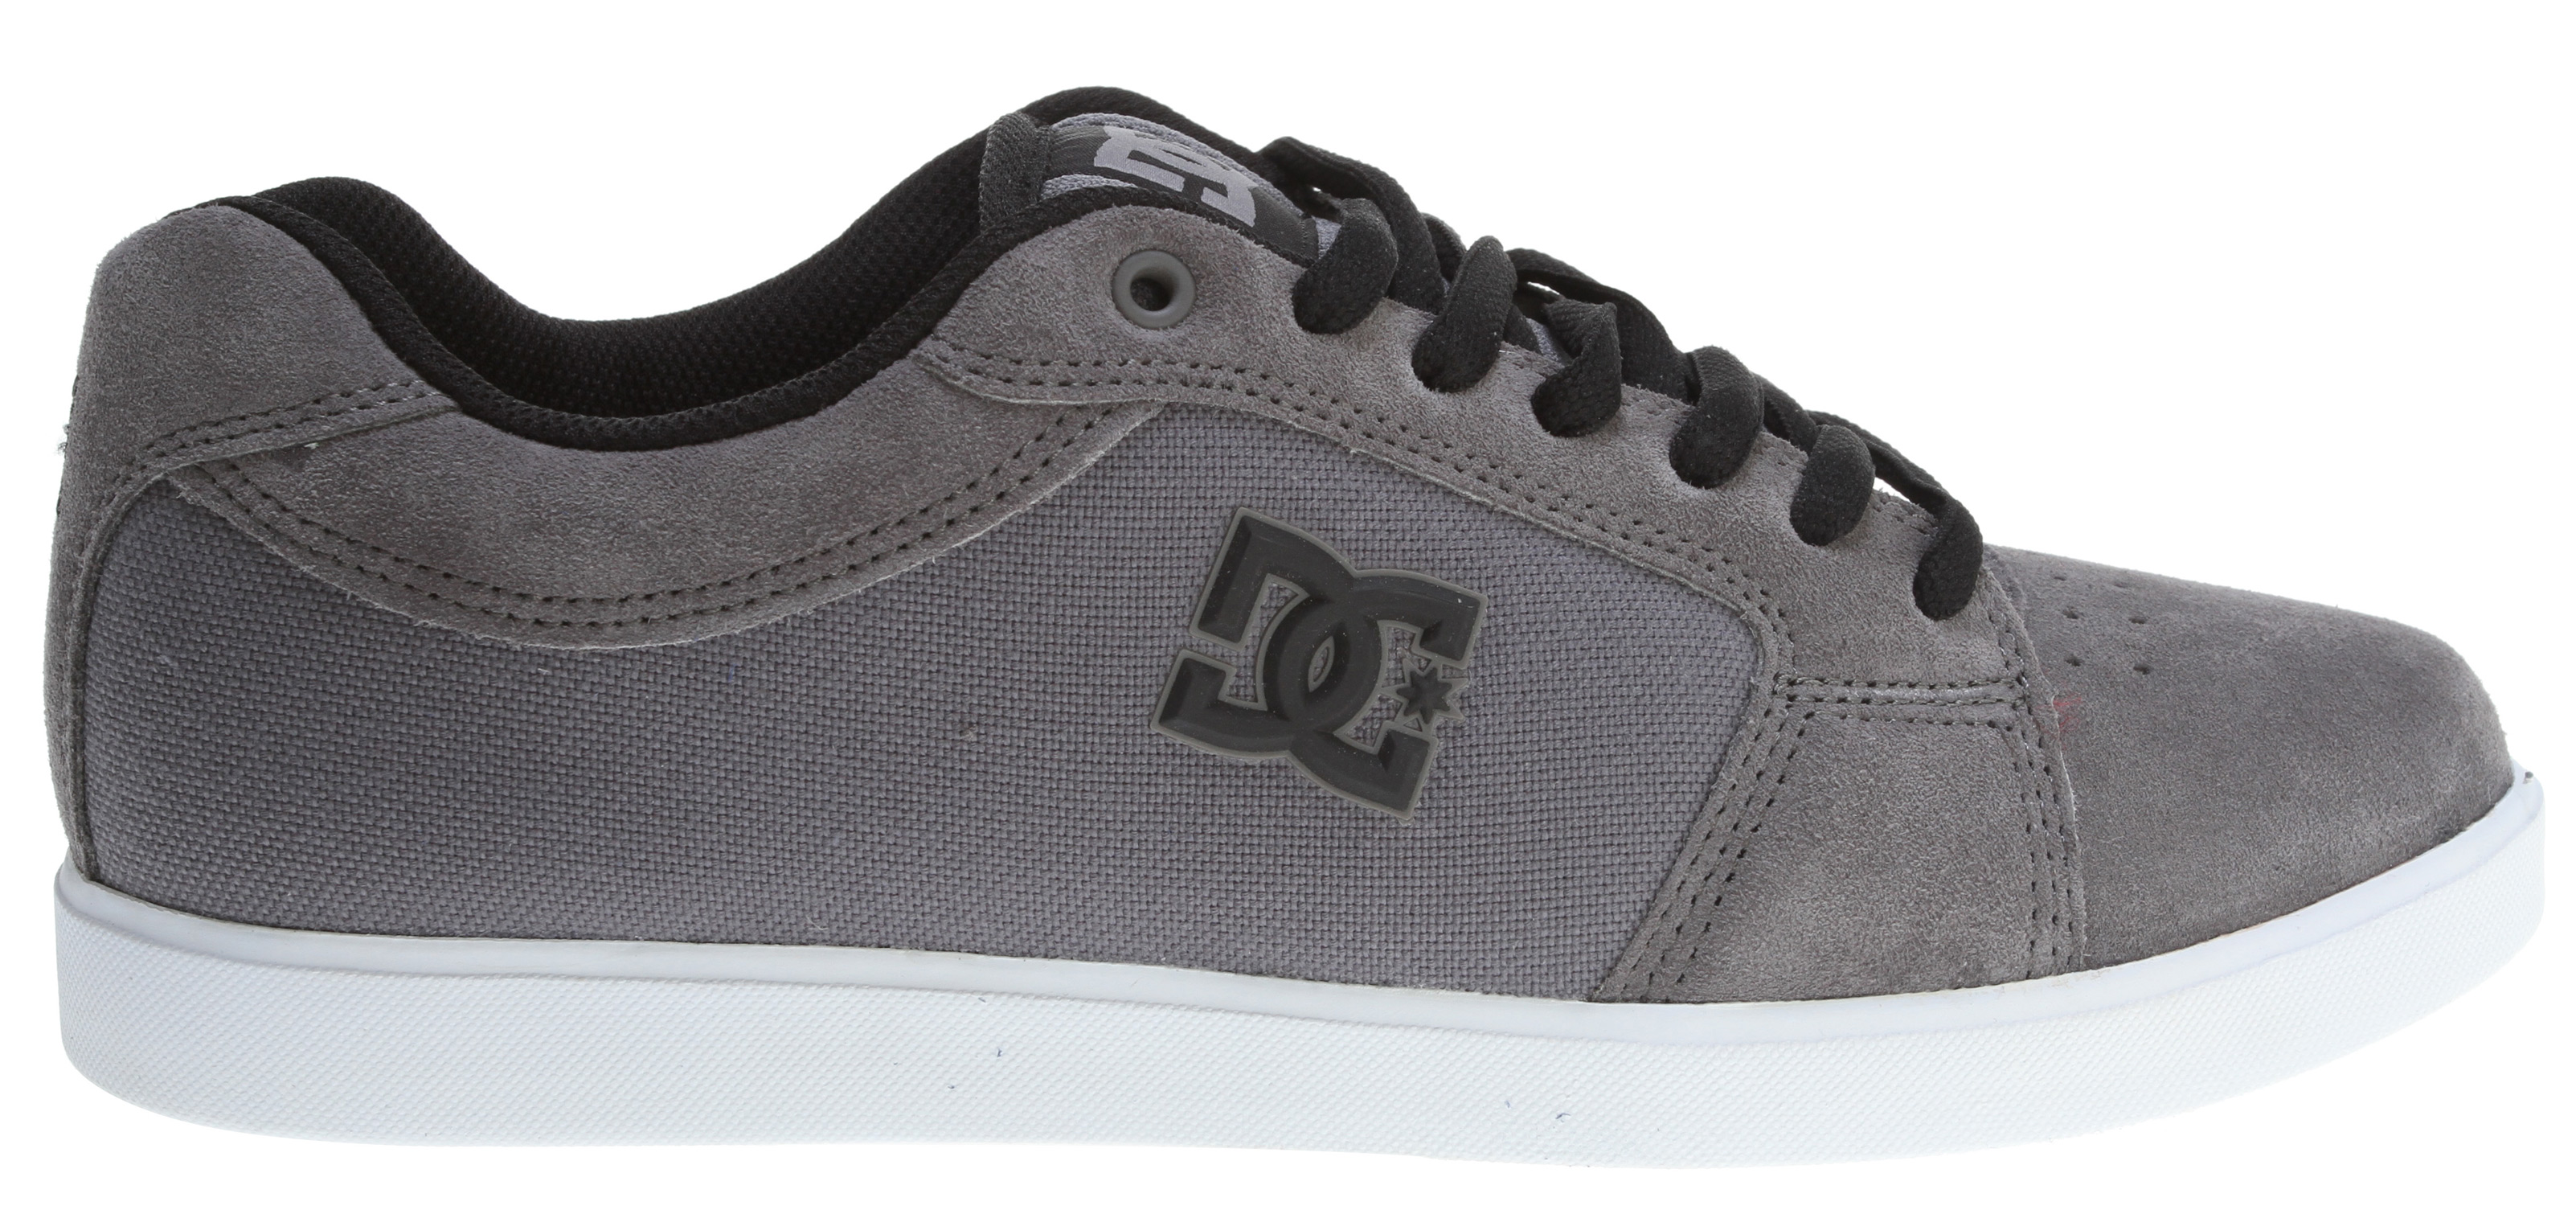 Skateboard Key Features of the DC Phaser Skate Shoes: Foam padded tongue and collar for added comfort and support vent holes in upper for increased air flow DC performance cupsole Abrasion resistant sticky rubber outsole with classic herringbone tread - $35.95